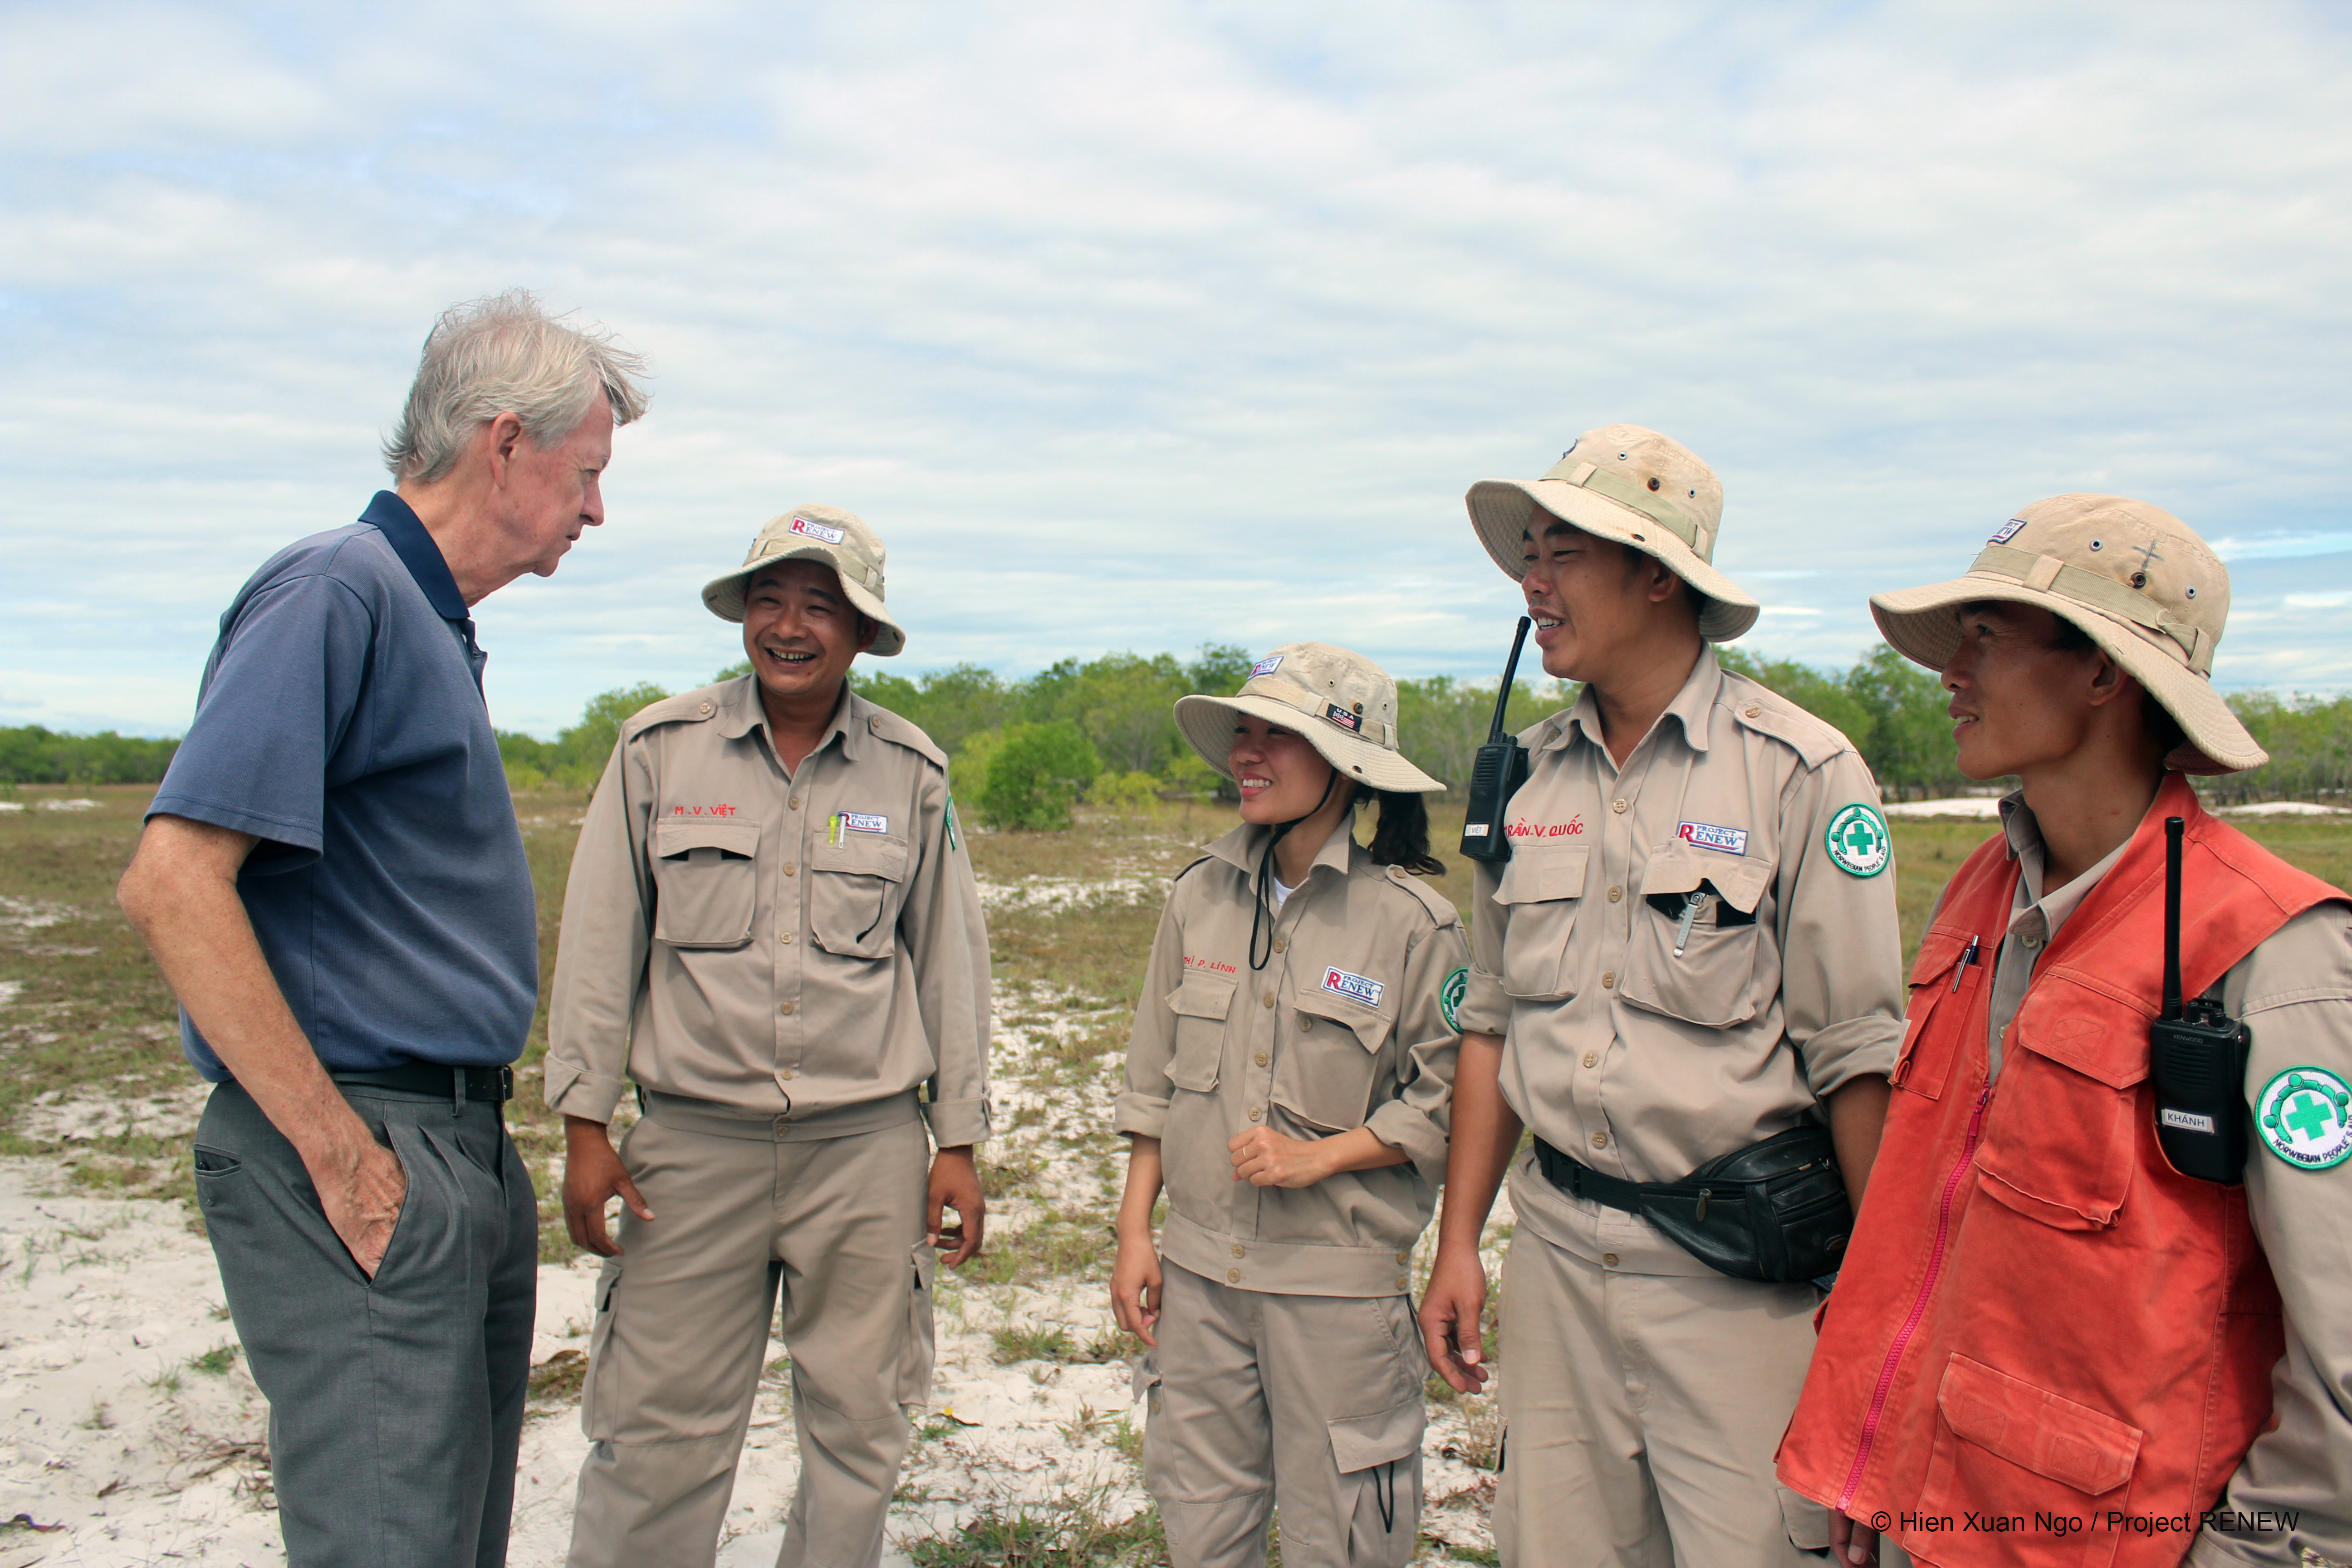 The author (left) is seen with members of Project RENEW to find and clear explosive ordnance in Quang Tri Province, Vietnam in this undated supplied photo.